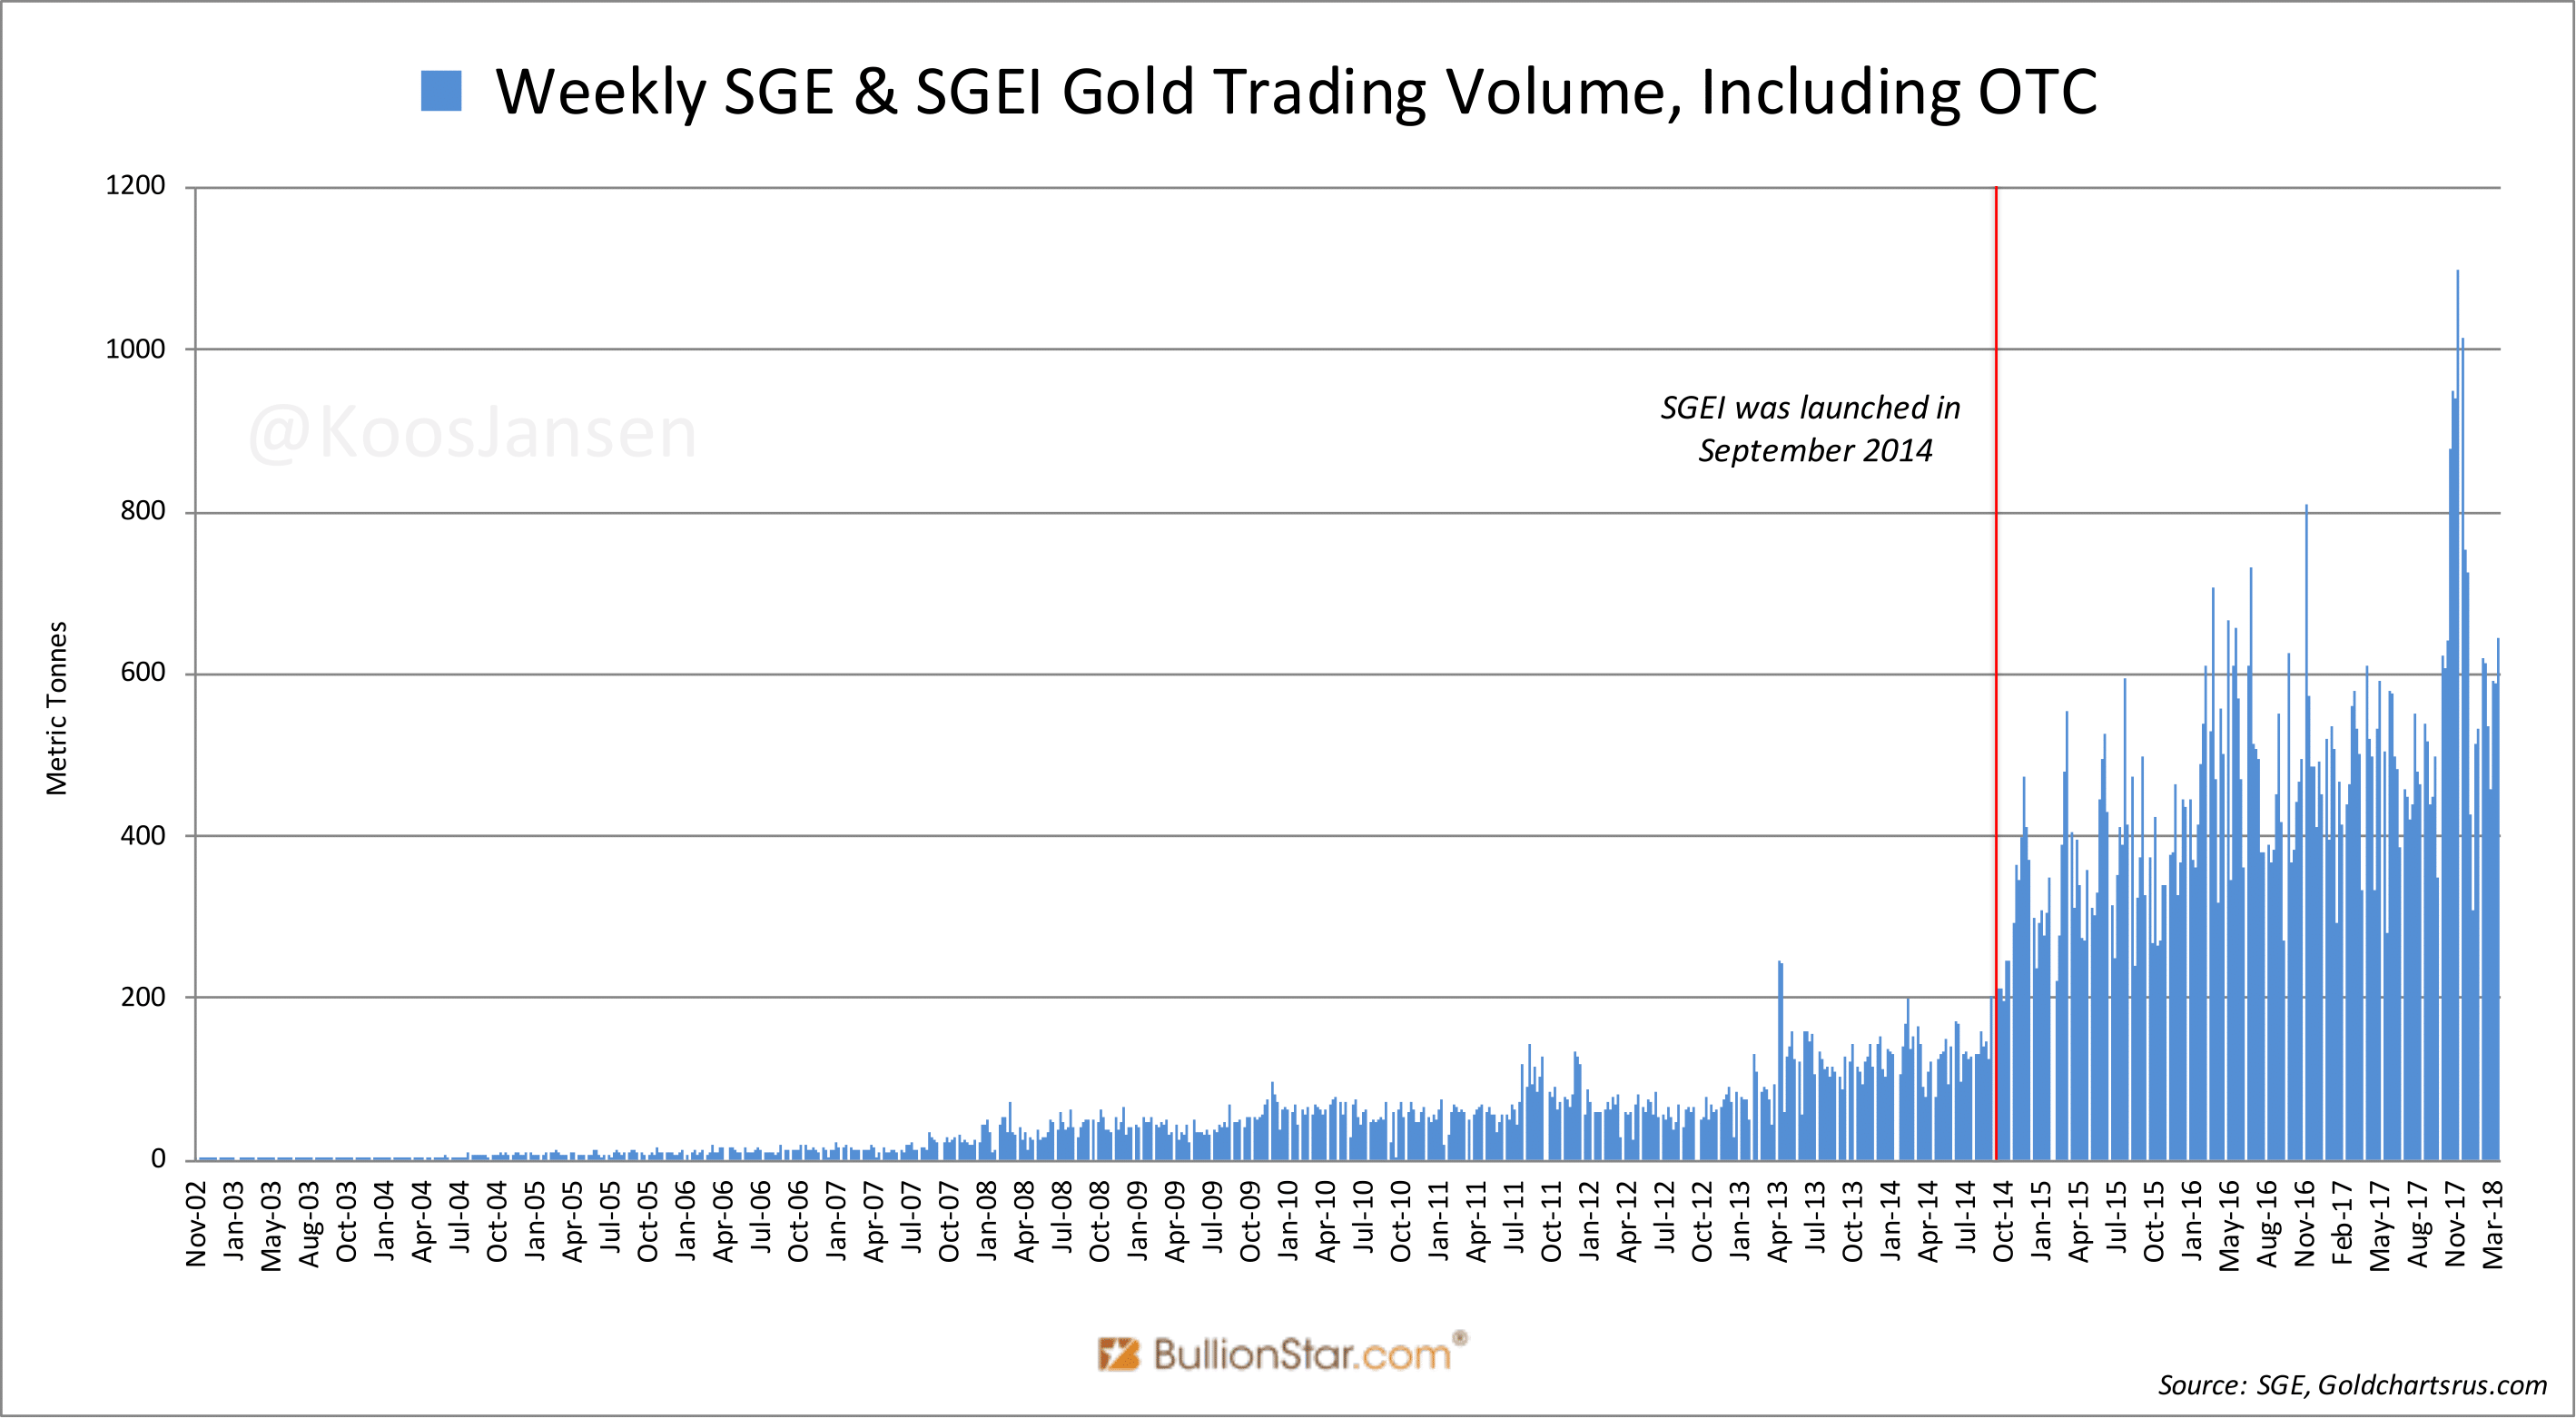 Weekly SGE and SGEI Gold Trading Volume, Nov 2002 - Mar 2018